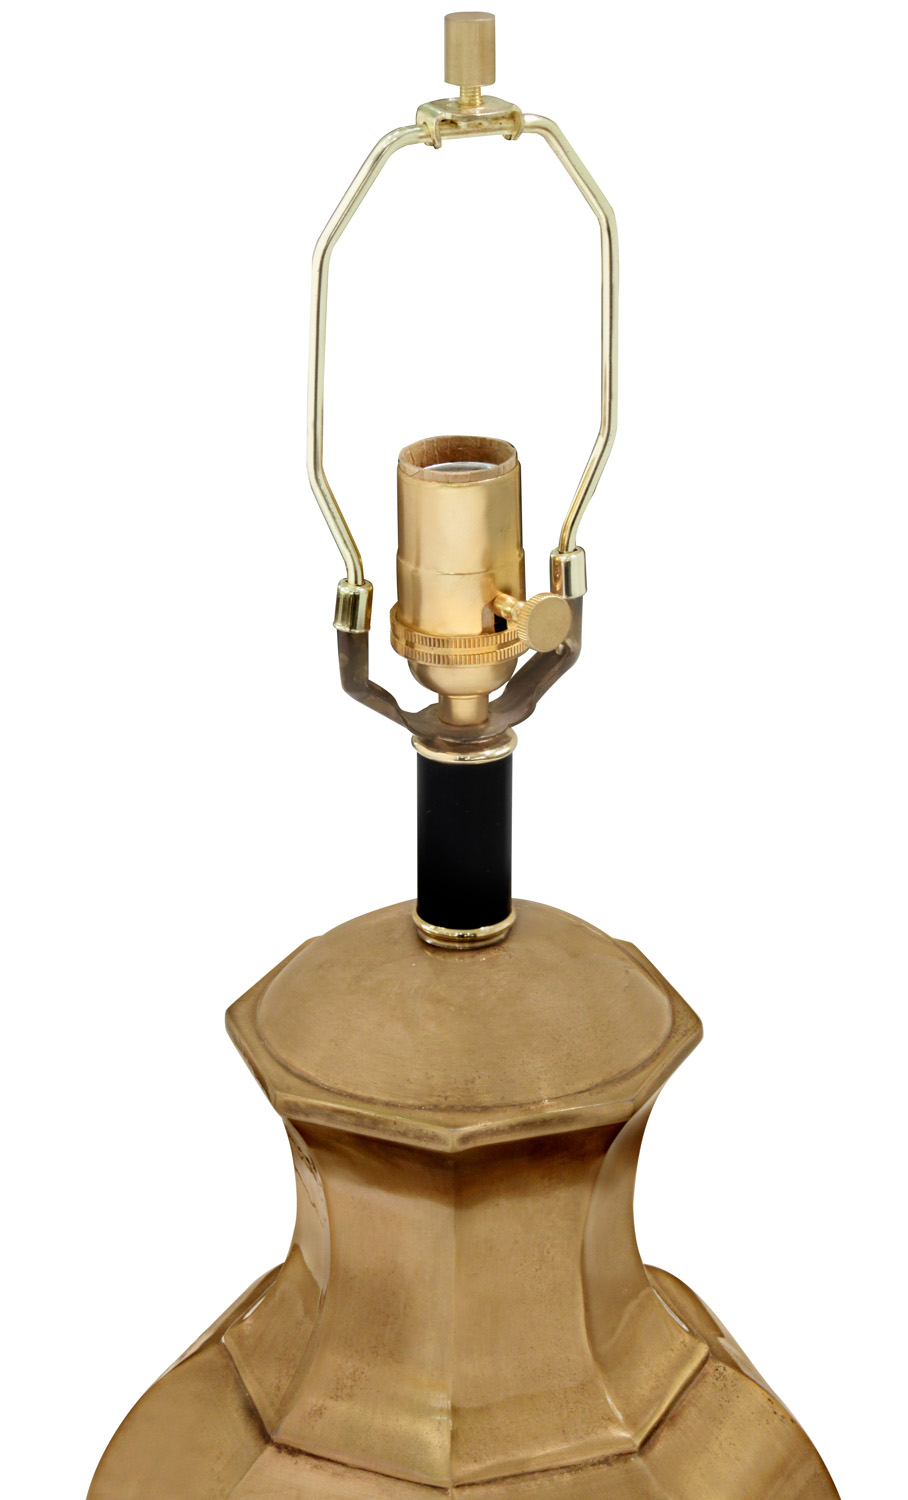 Chapman 50 brass jar tablelamps174 detail4 hires.jpg